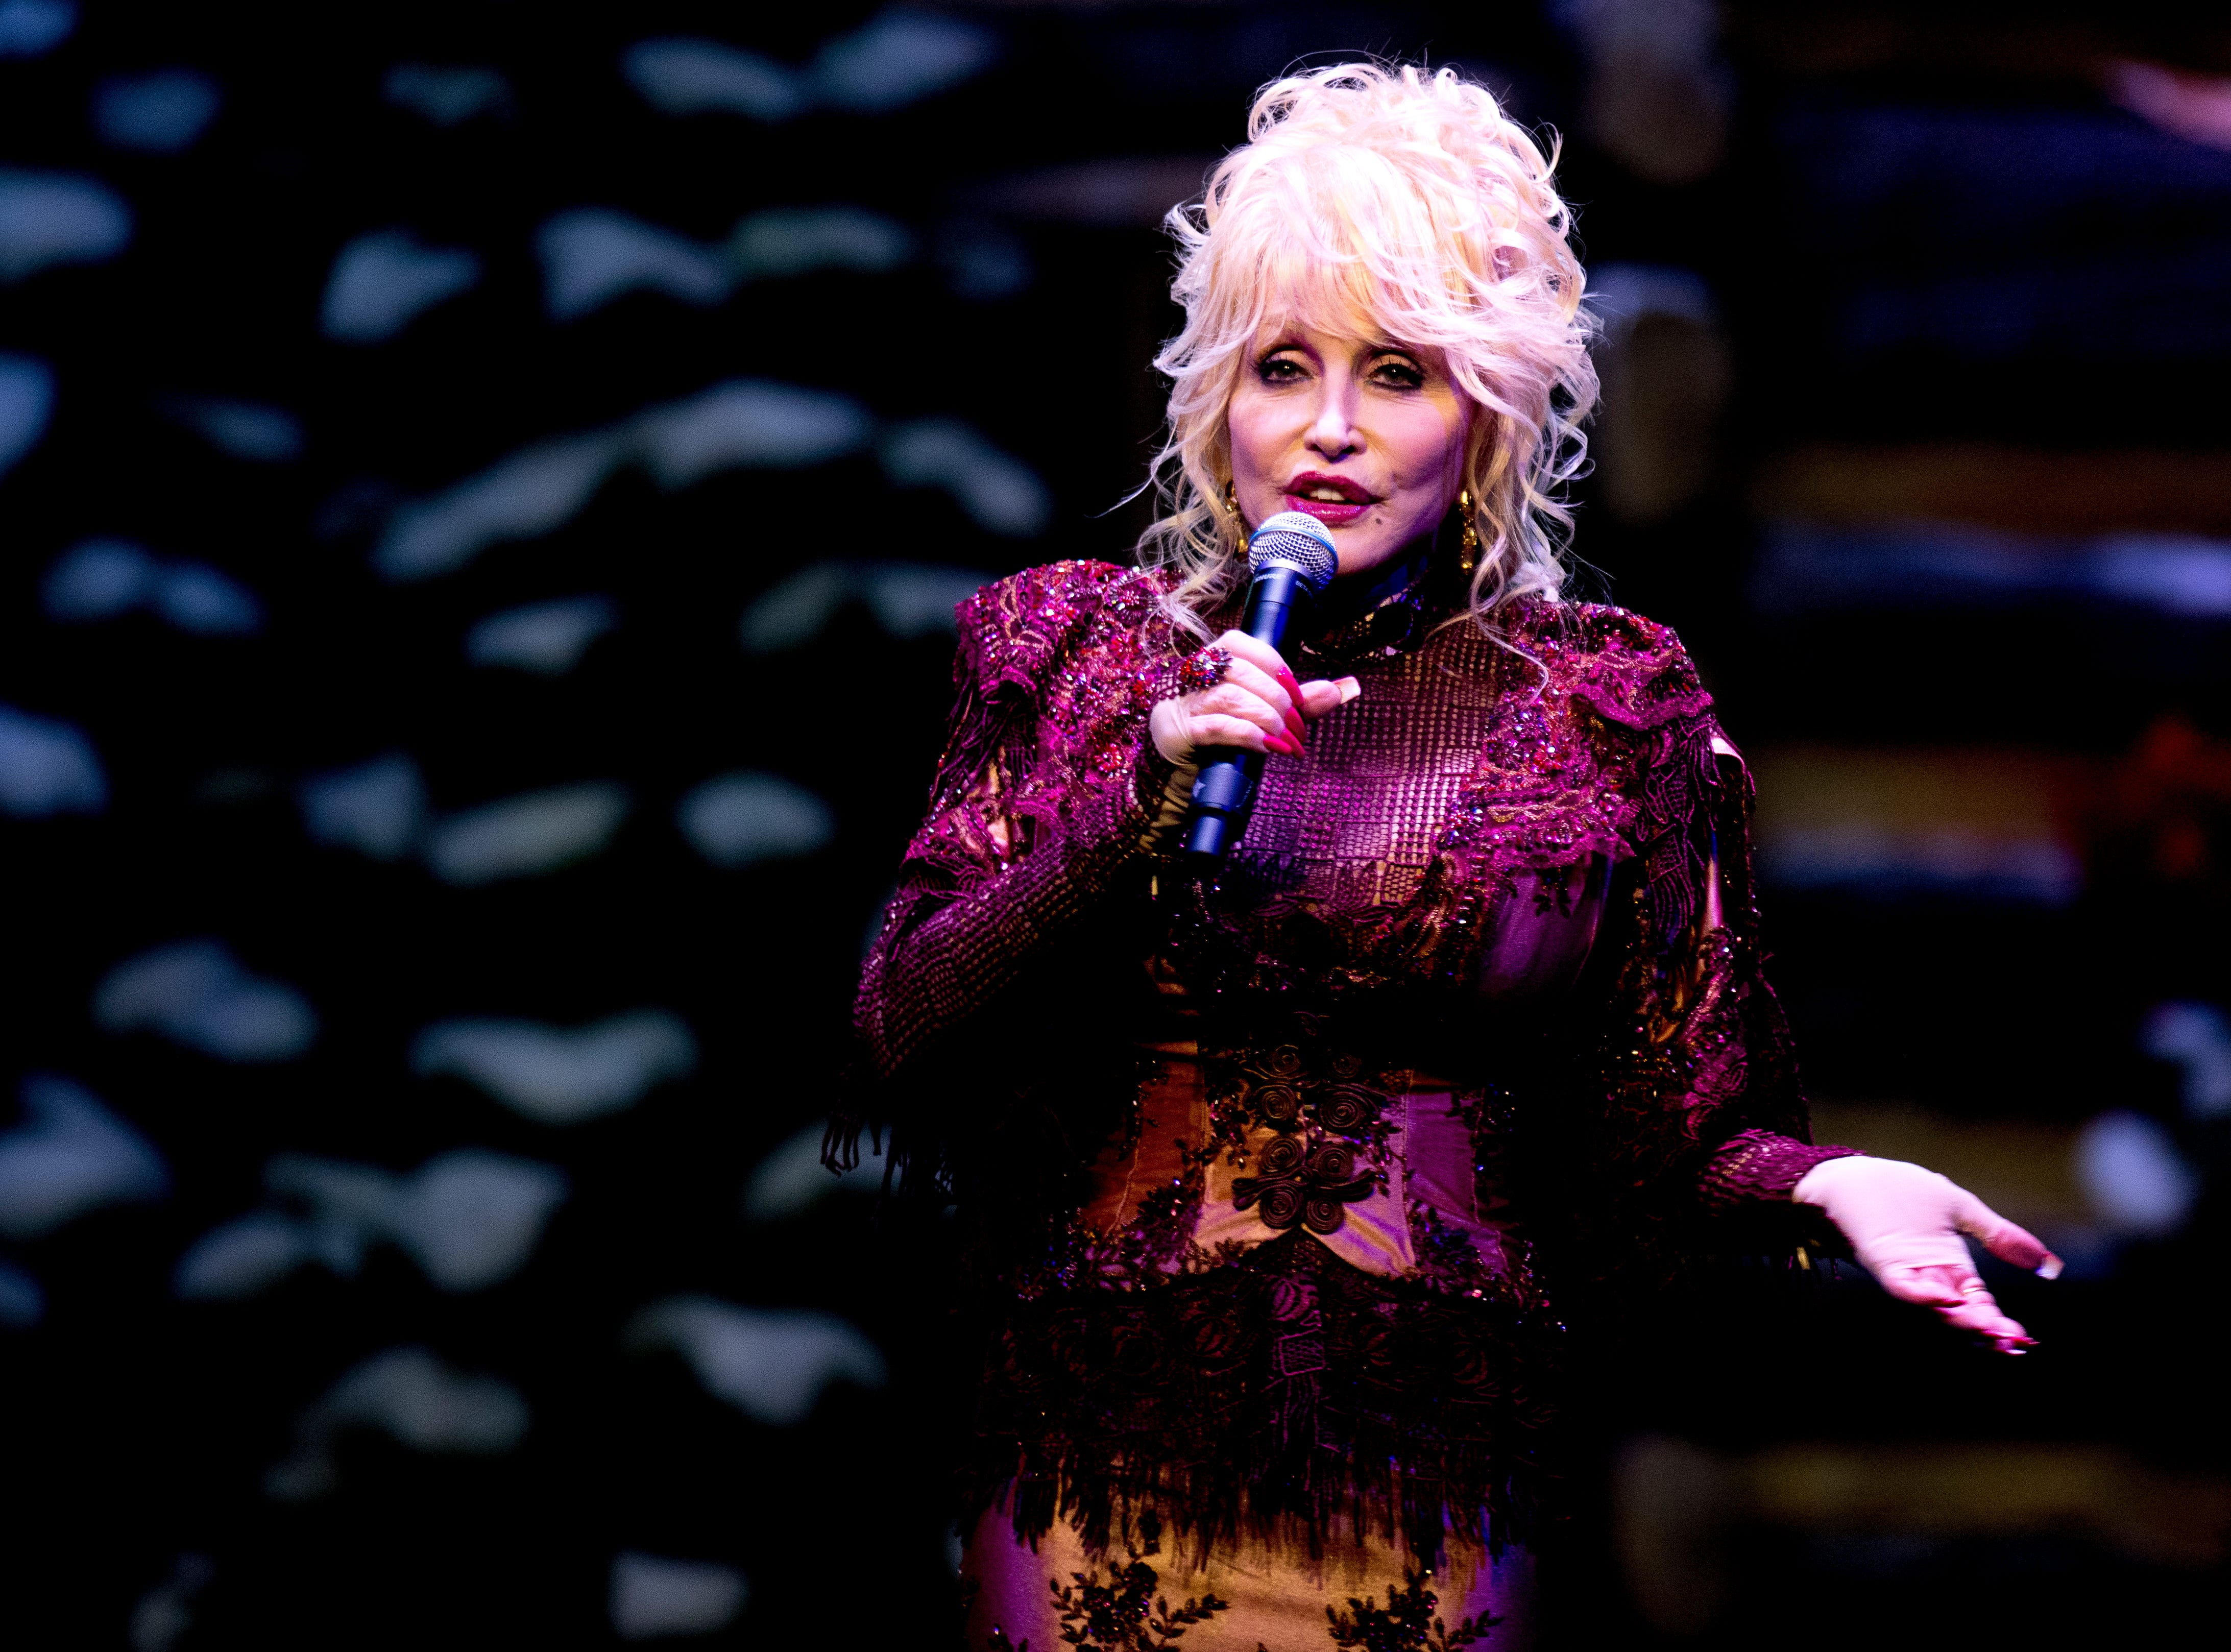 Dolly Parton welcomes visitors to the Christmas in the Smokies show at Dollywood in Pigeon Forge, Tennessee on Friday, November 9, 2018. Glacier Ridge features several new lighting displays, including a 50-ft. tall animated tree, the all new Arctic Passage and the Northern Lights.